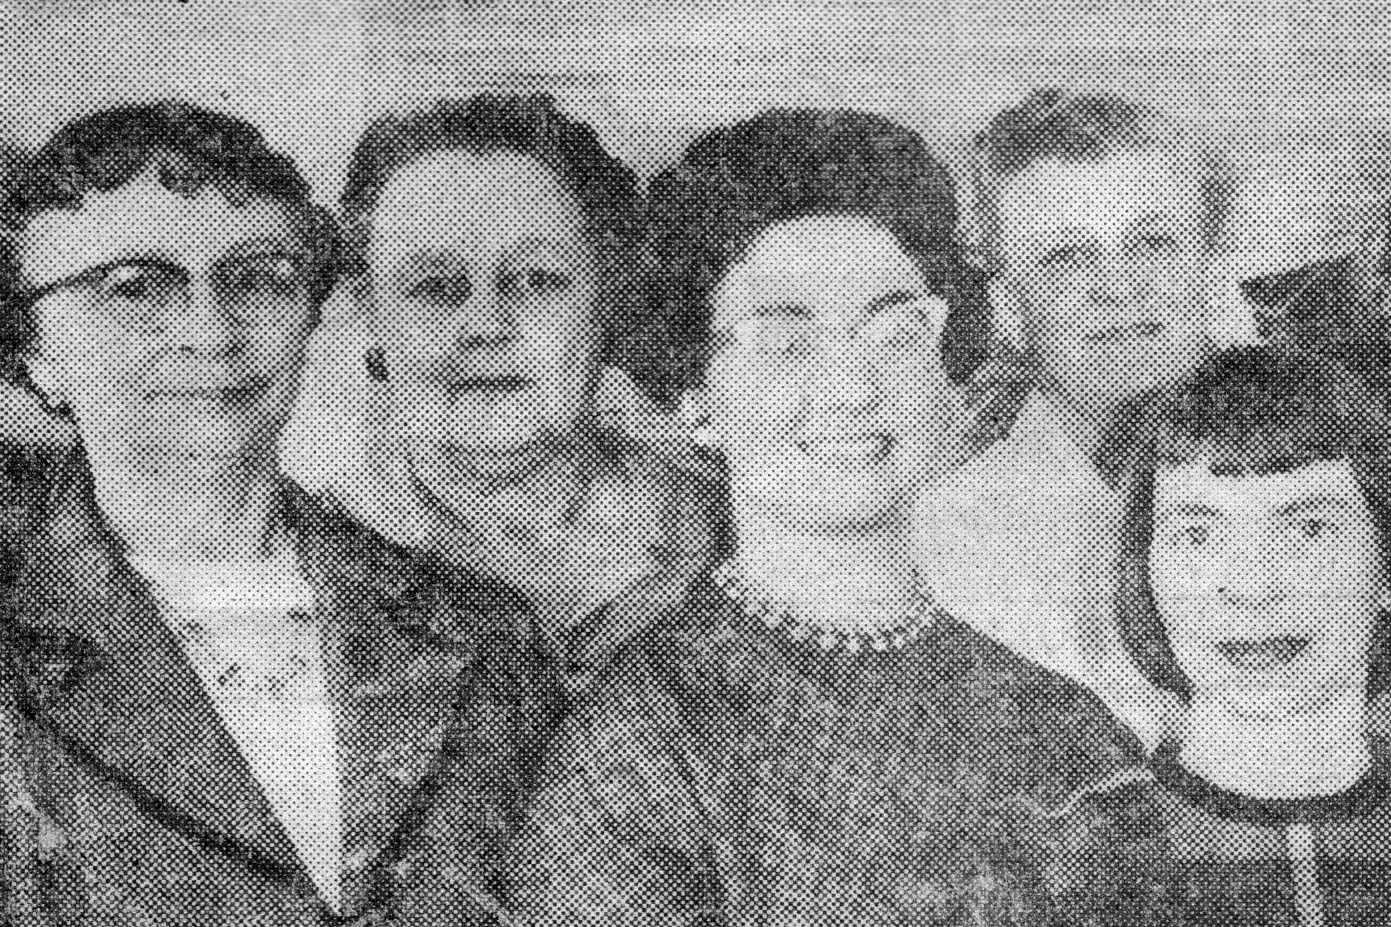 Four members of Bainbridge Arts & Crafts' Board of Trustees, elected in 1960, including the founding member, Pauli Dennis, pictured at far left.